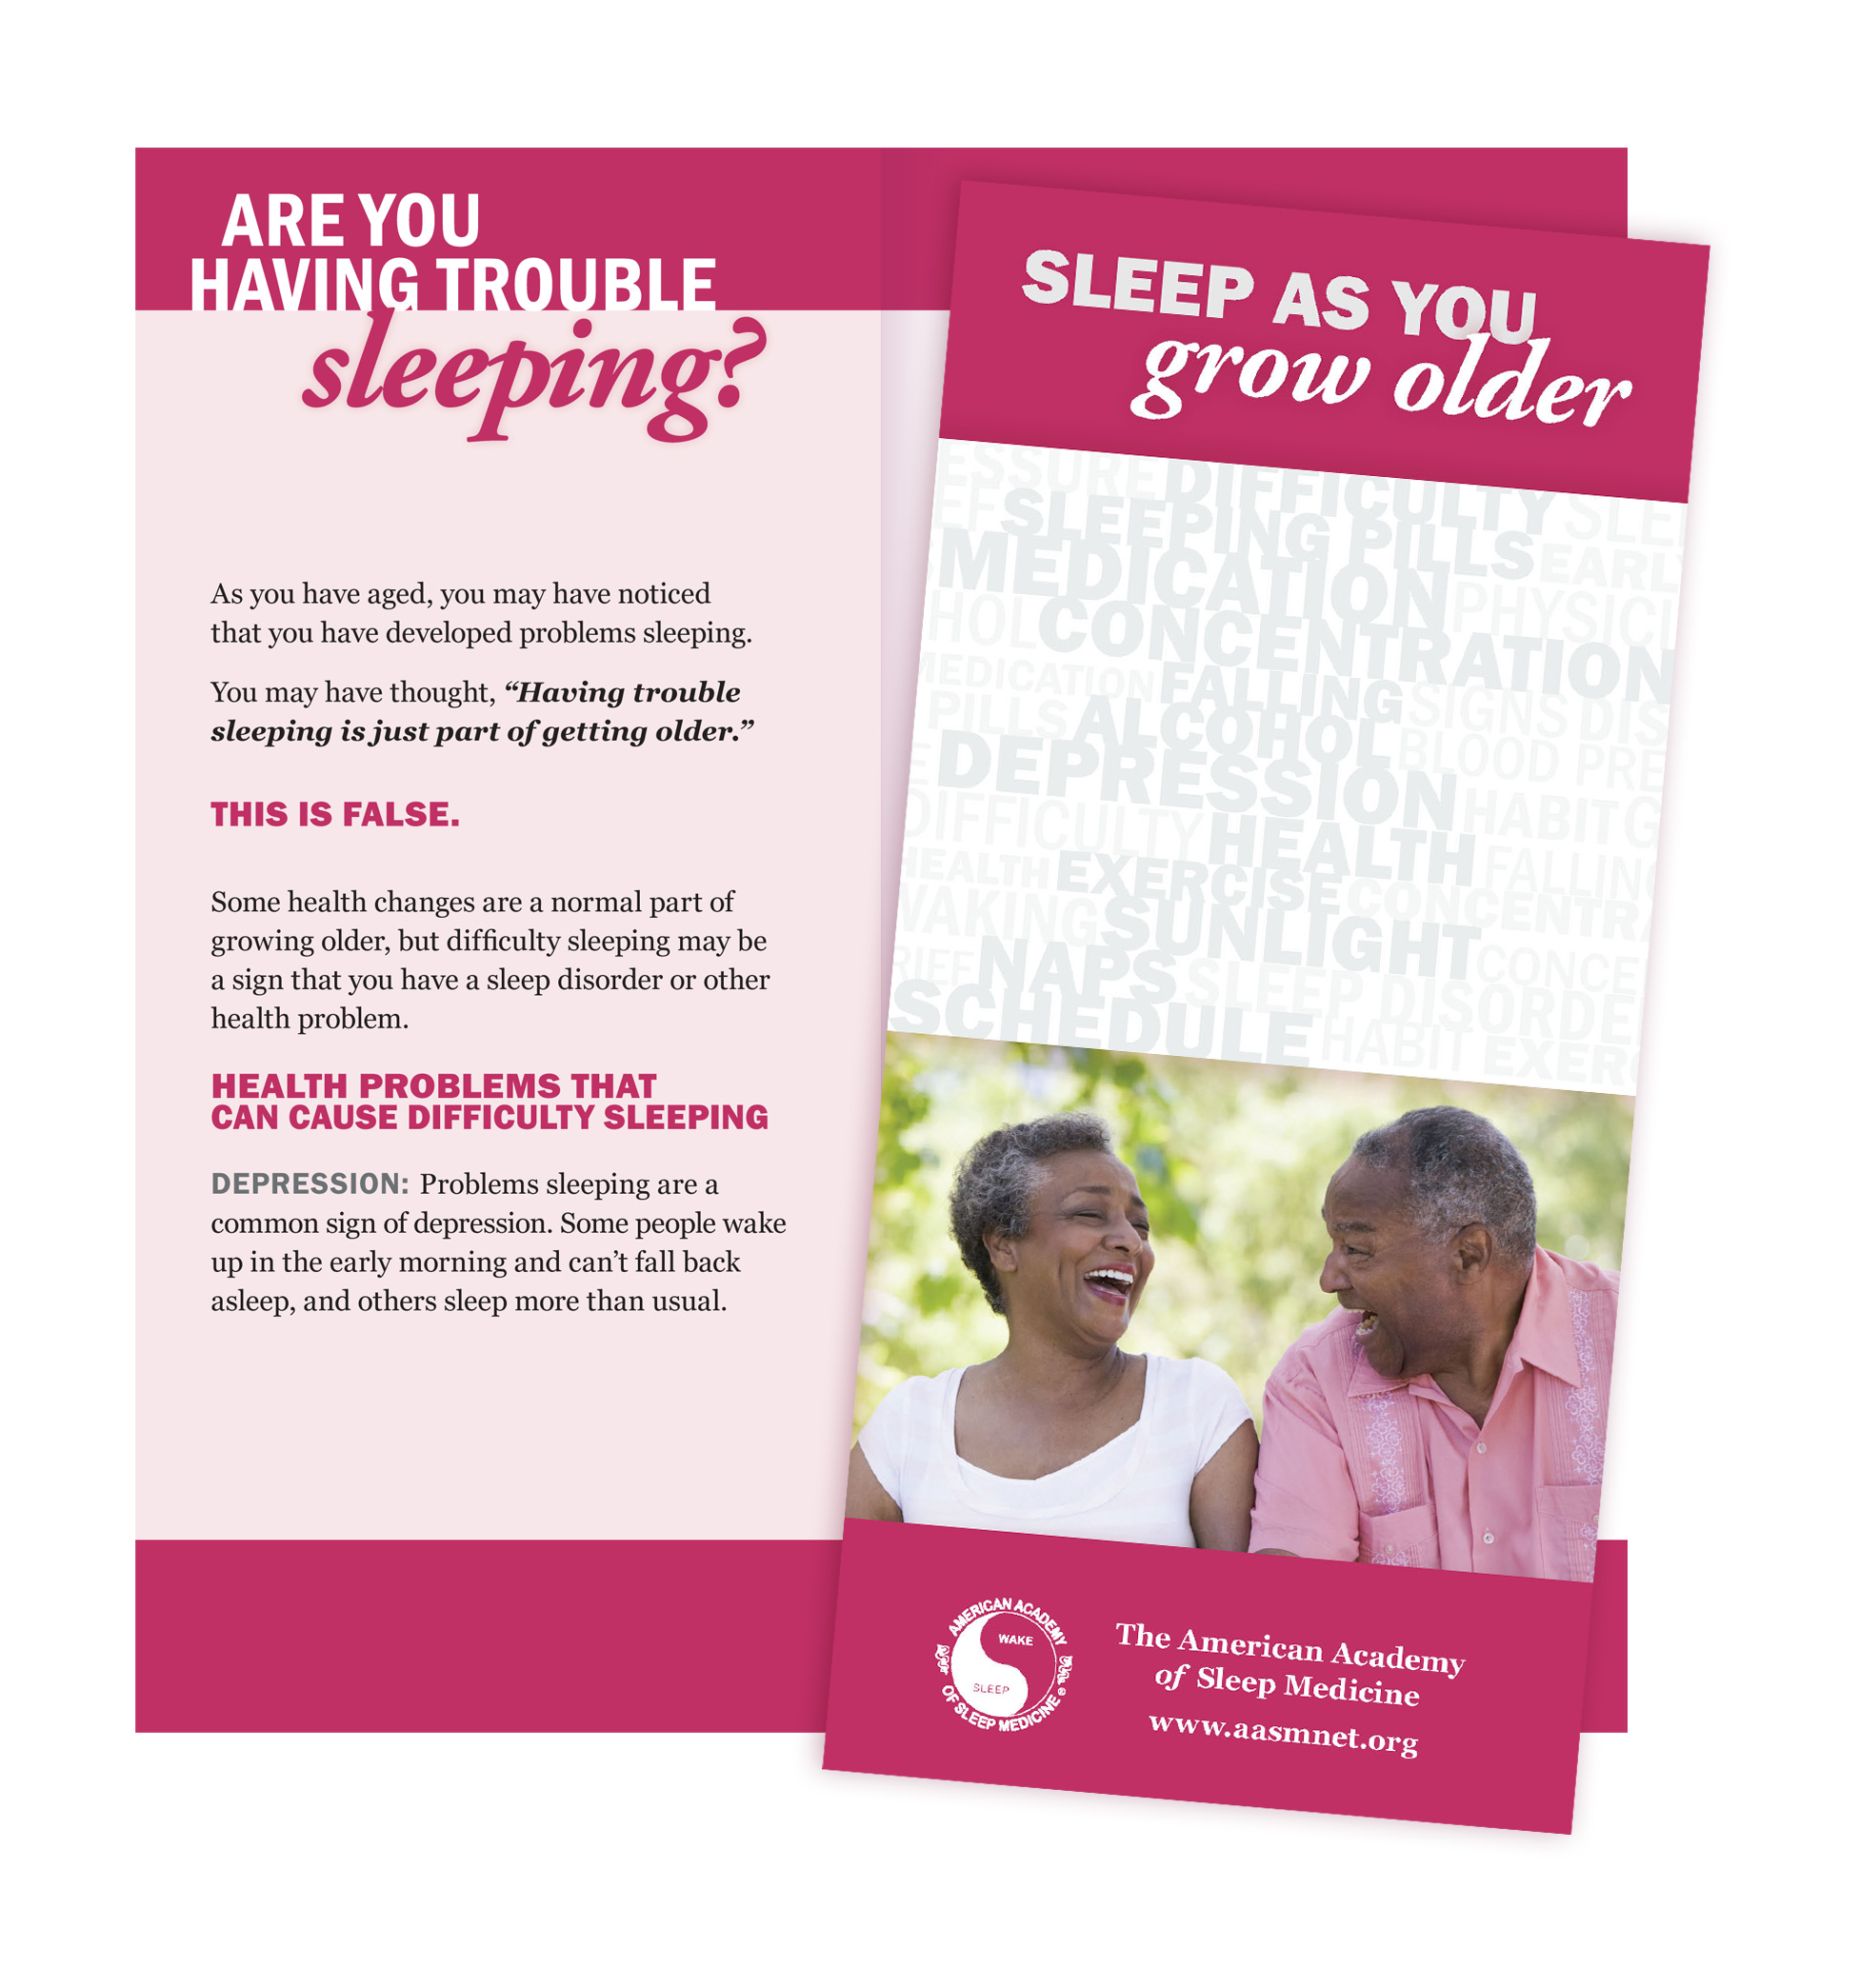 Sleep as You Grow Older Patient Education Brochures (50 brochures)